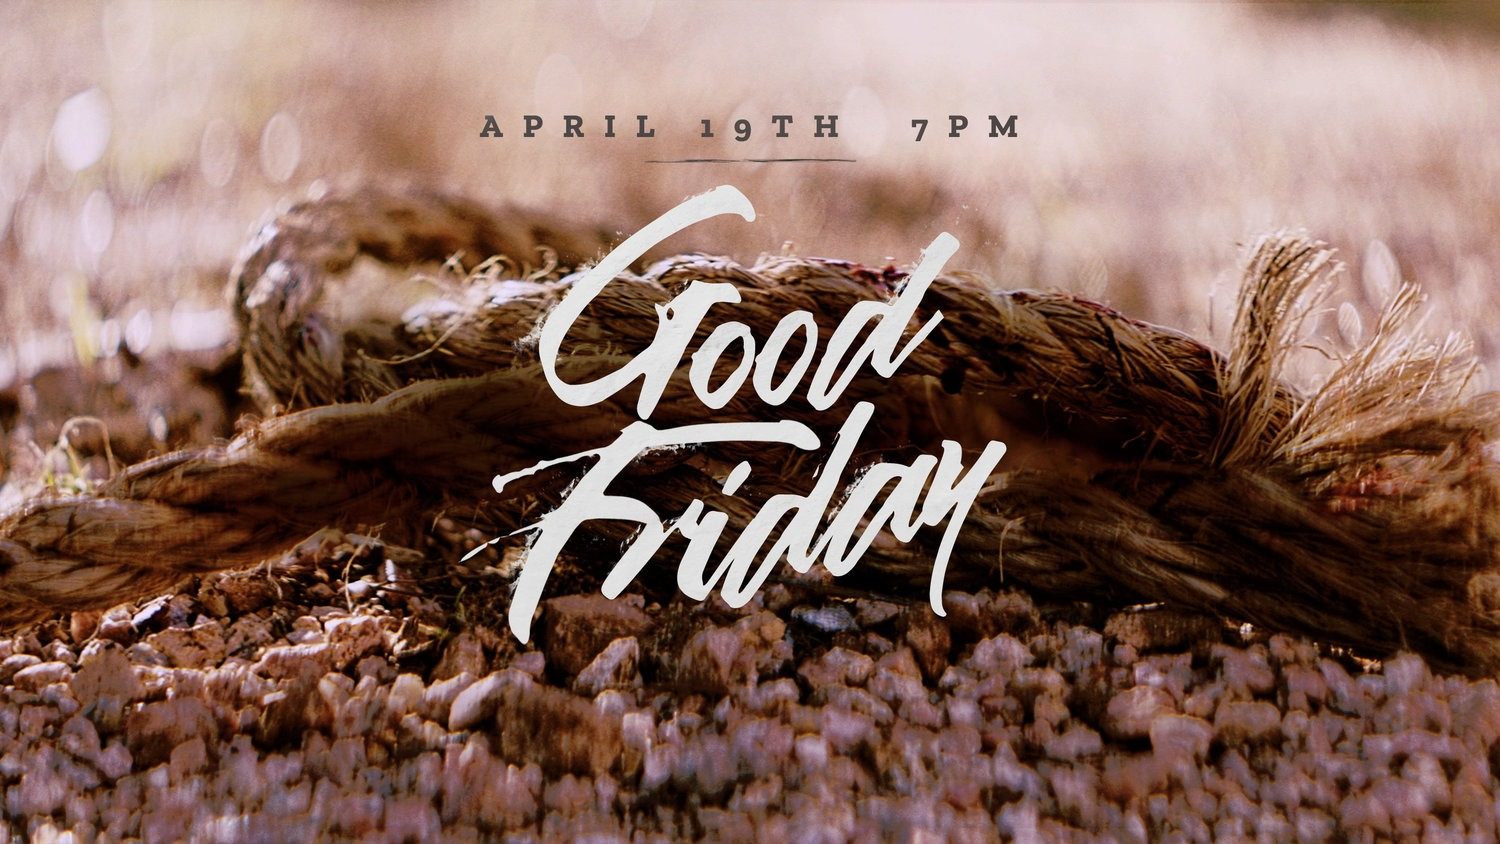 Good Friday Images Wallpapers Picture Greetings Cards 2019